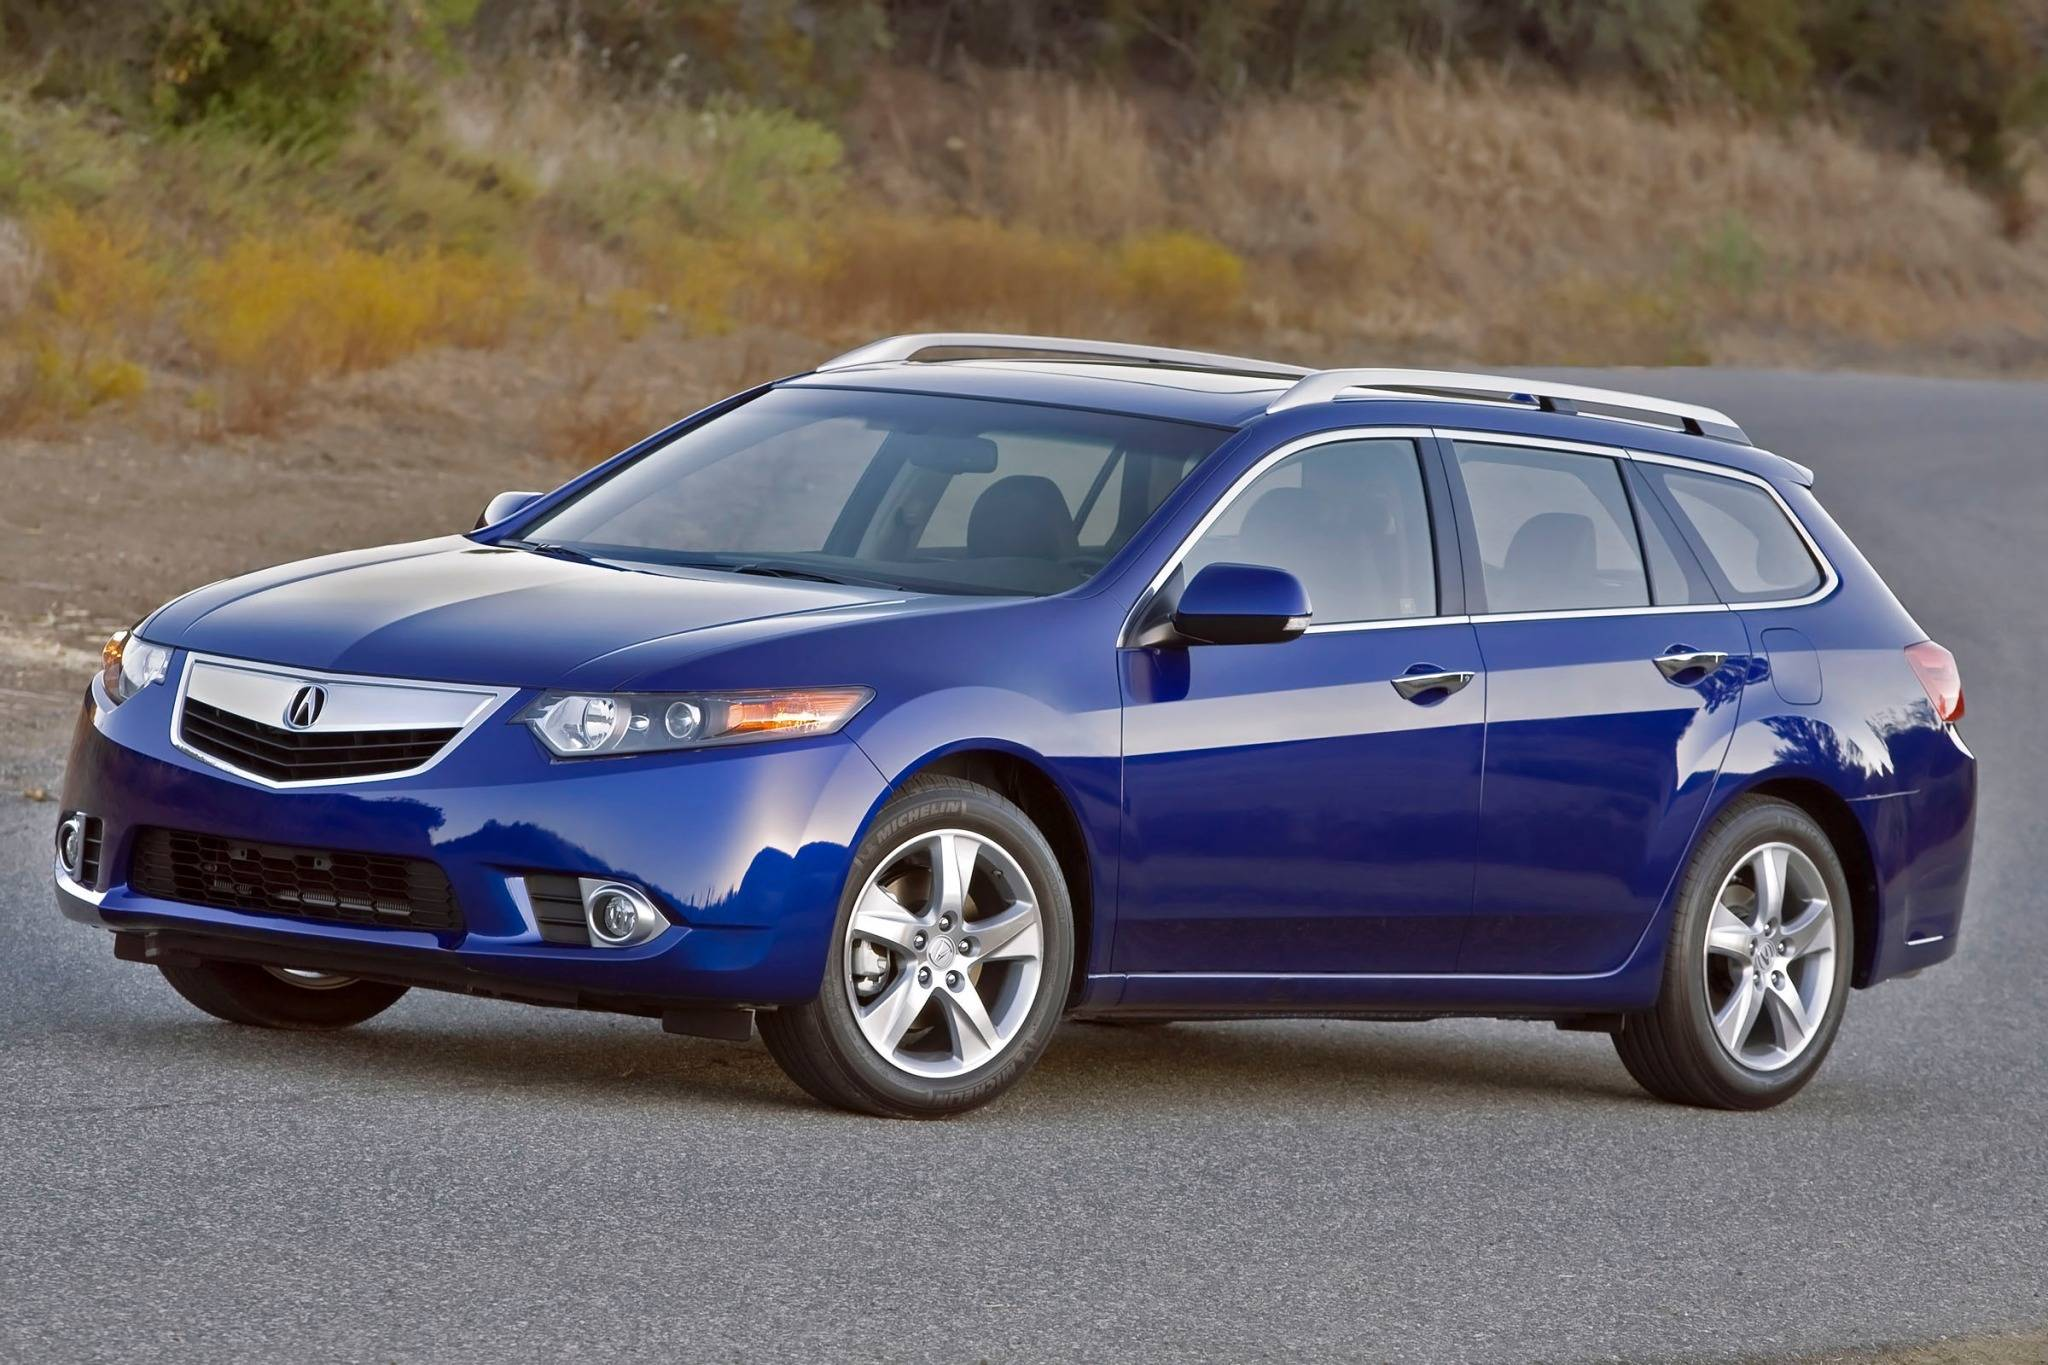 awd wheels acura sh quot tech tl suspension acurazine on tires photo forums a zdx